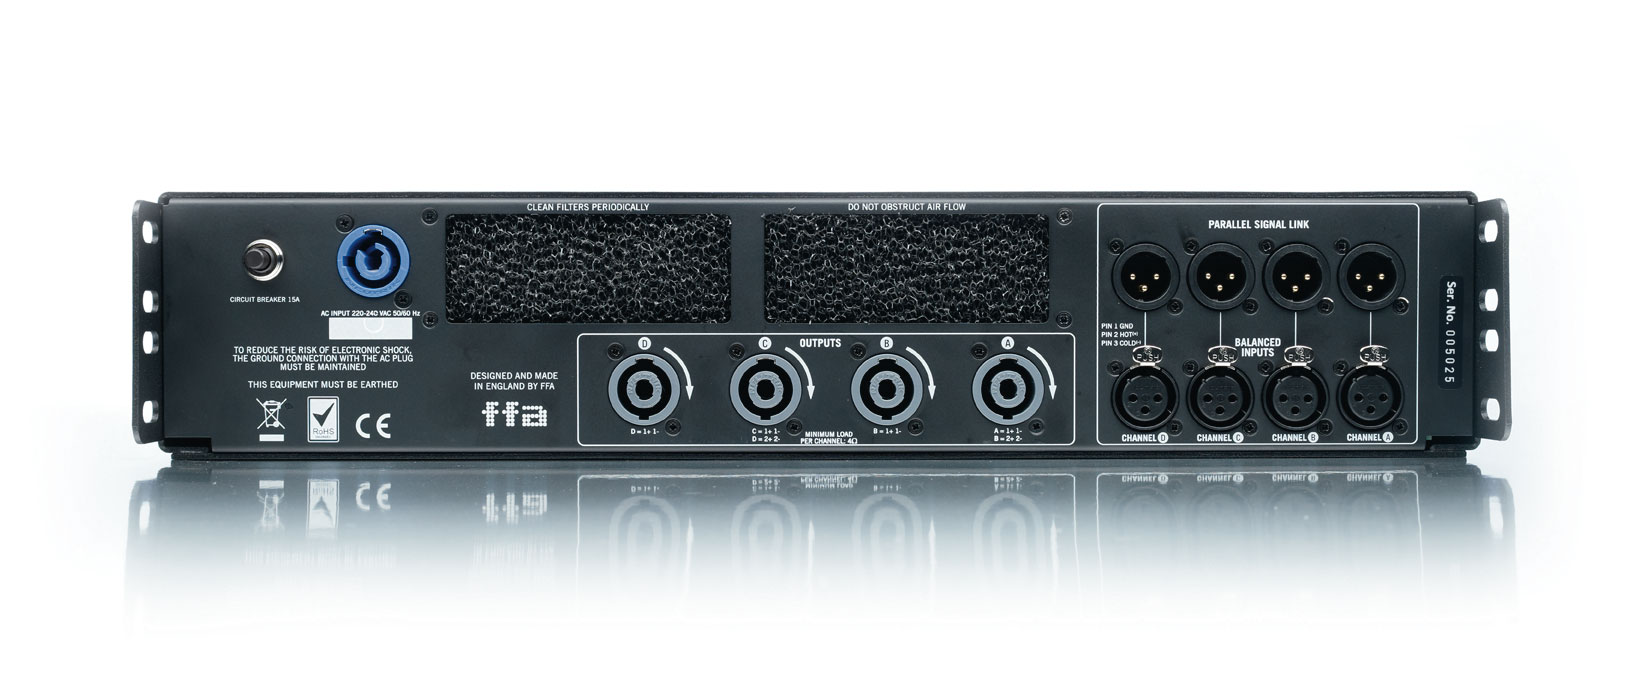 Full Fat Audio Versterker 6004